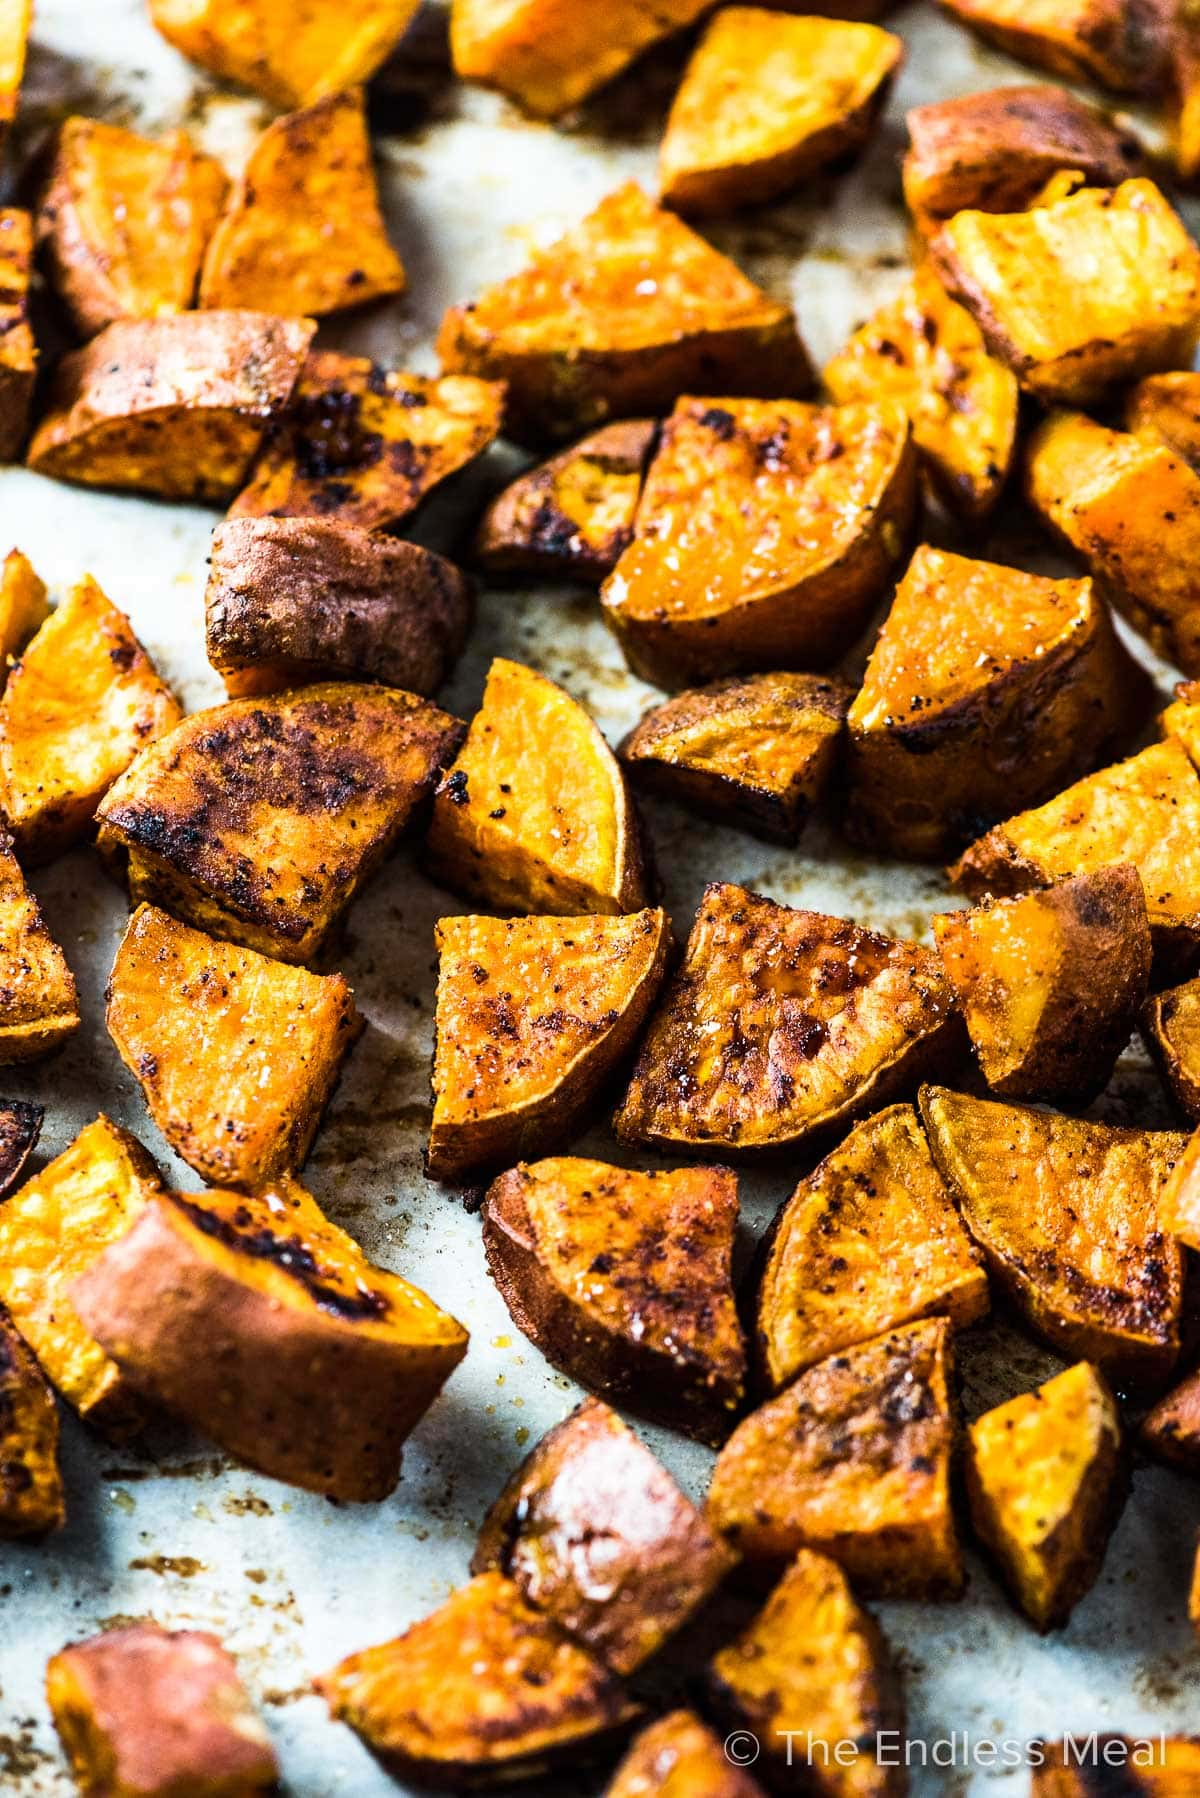 Spiced roasted sweet potatoes on a baking sheet.